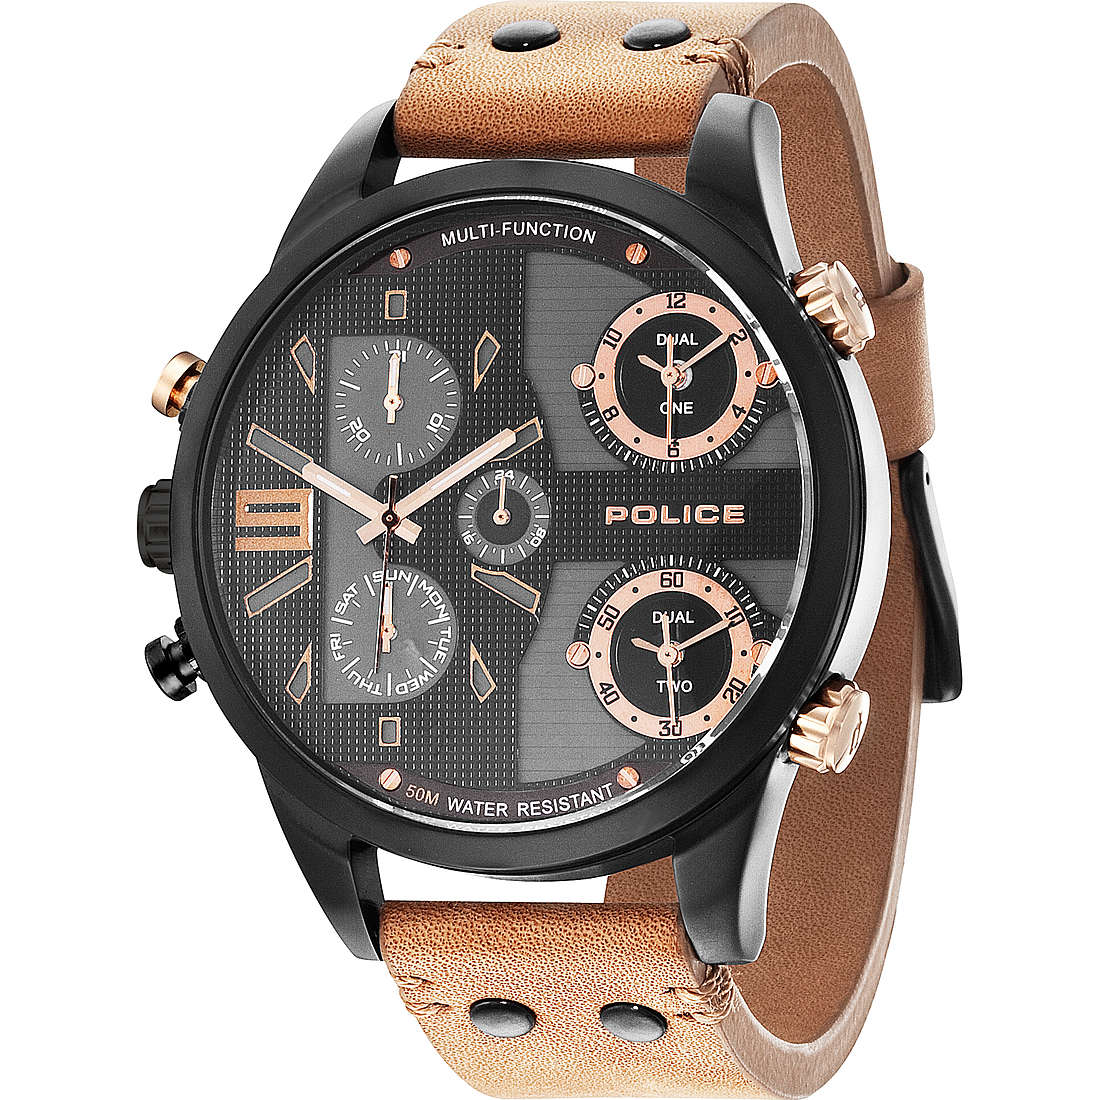 watch multifunction man Police Copperhead R1451240004